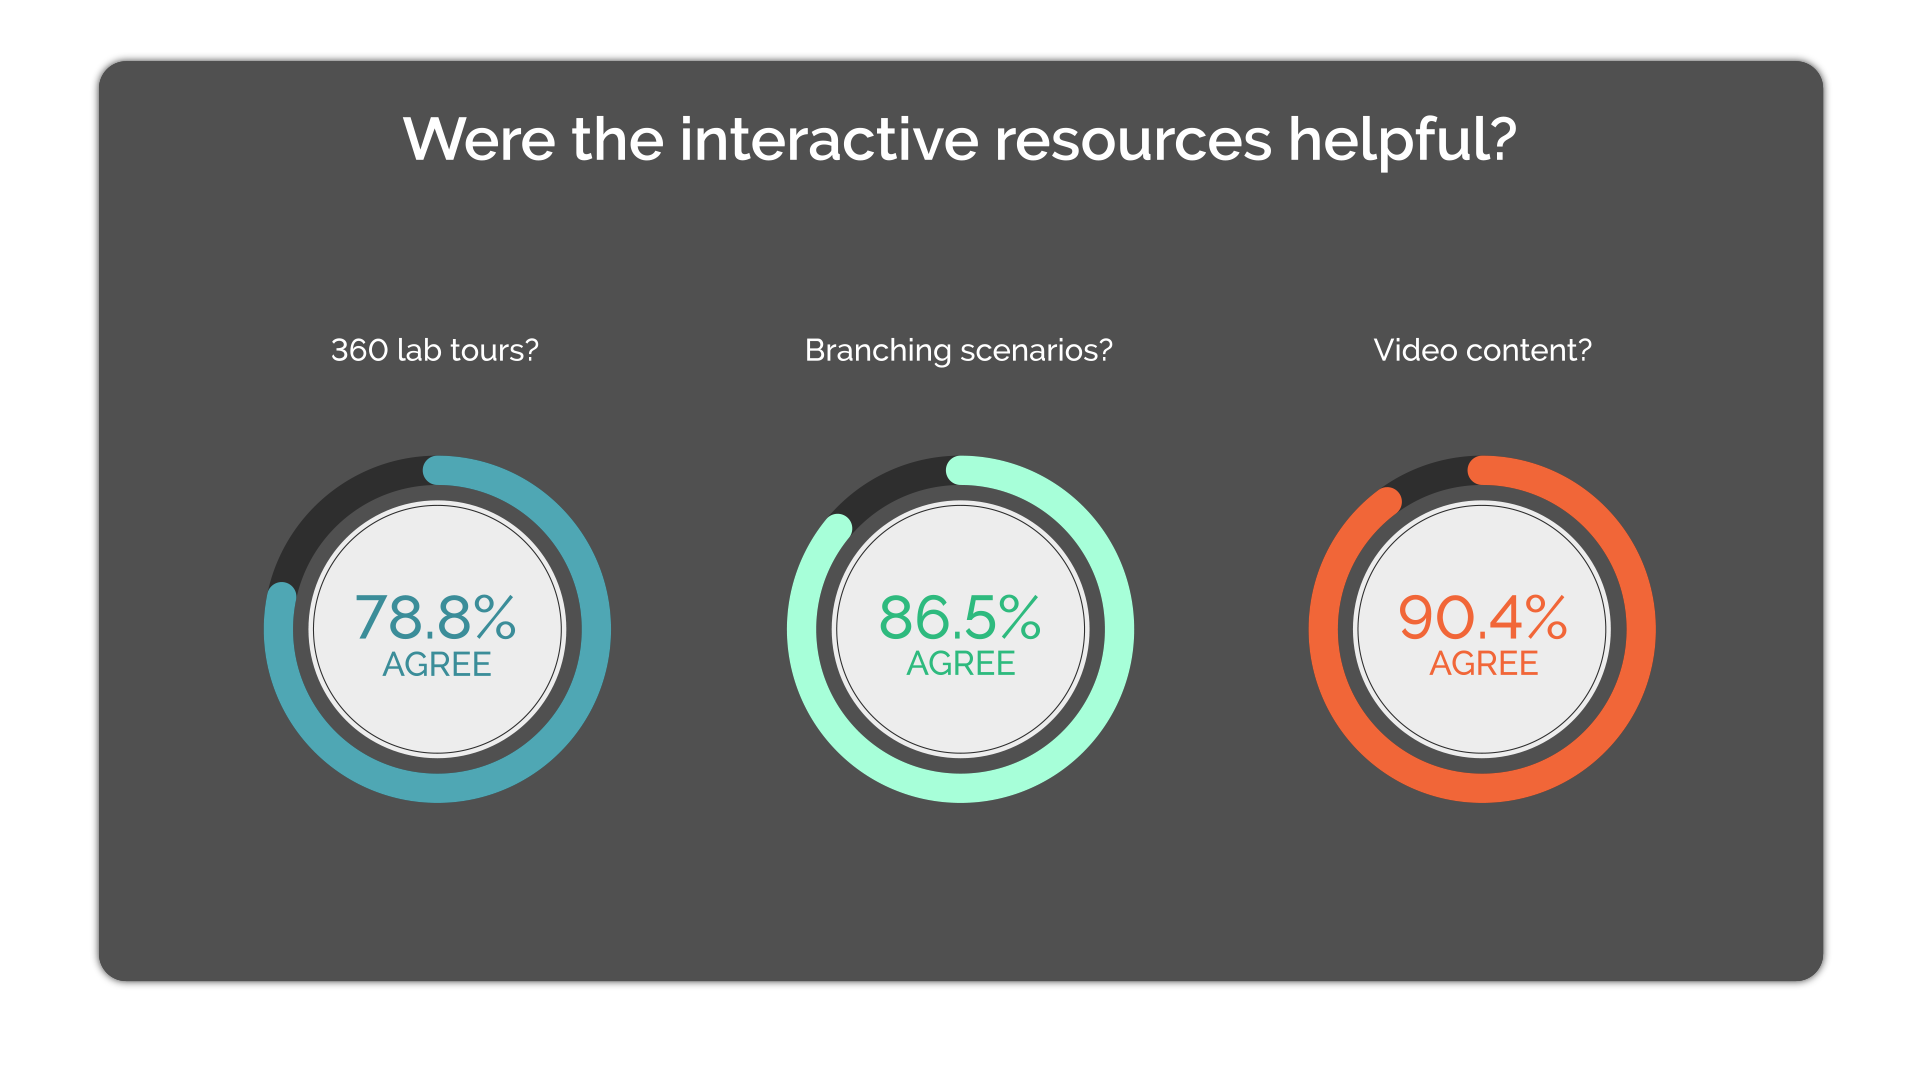 A data image showing a large proportion of students agreeing the interactive resources were helpful.